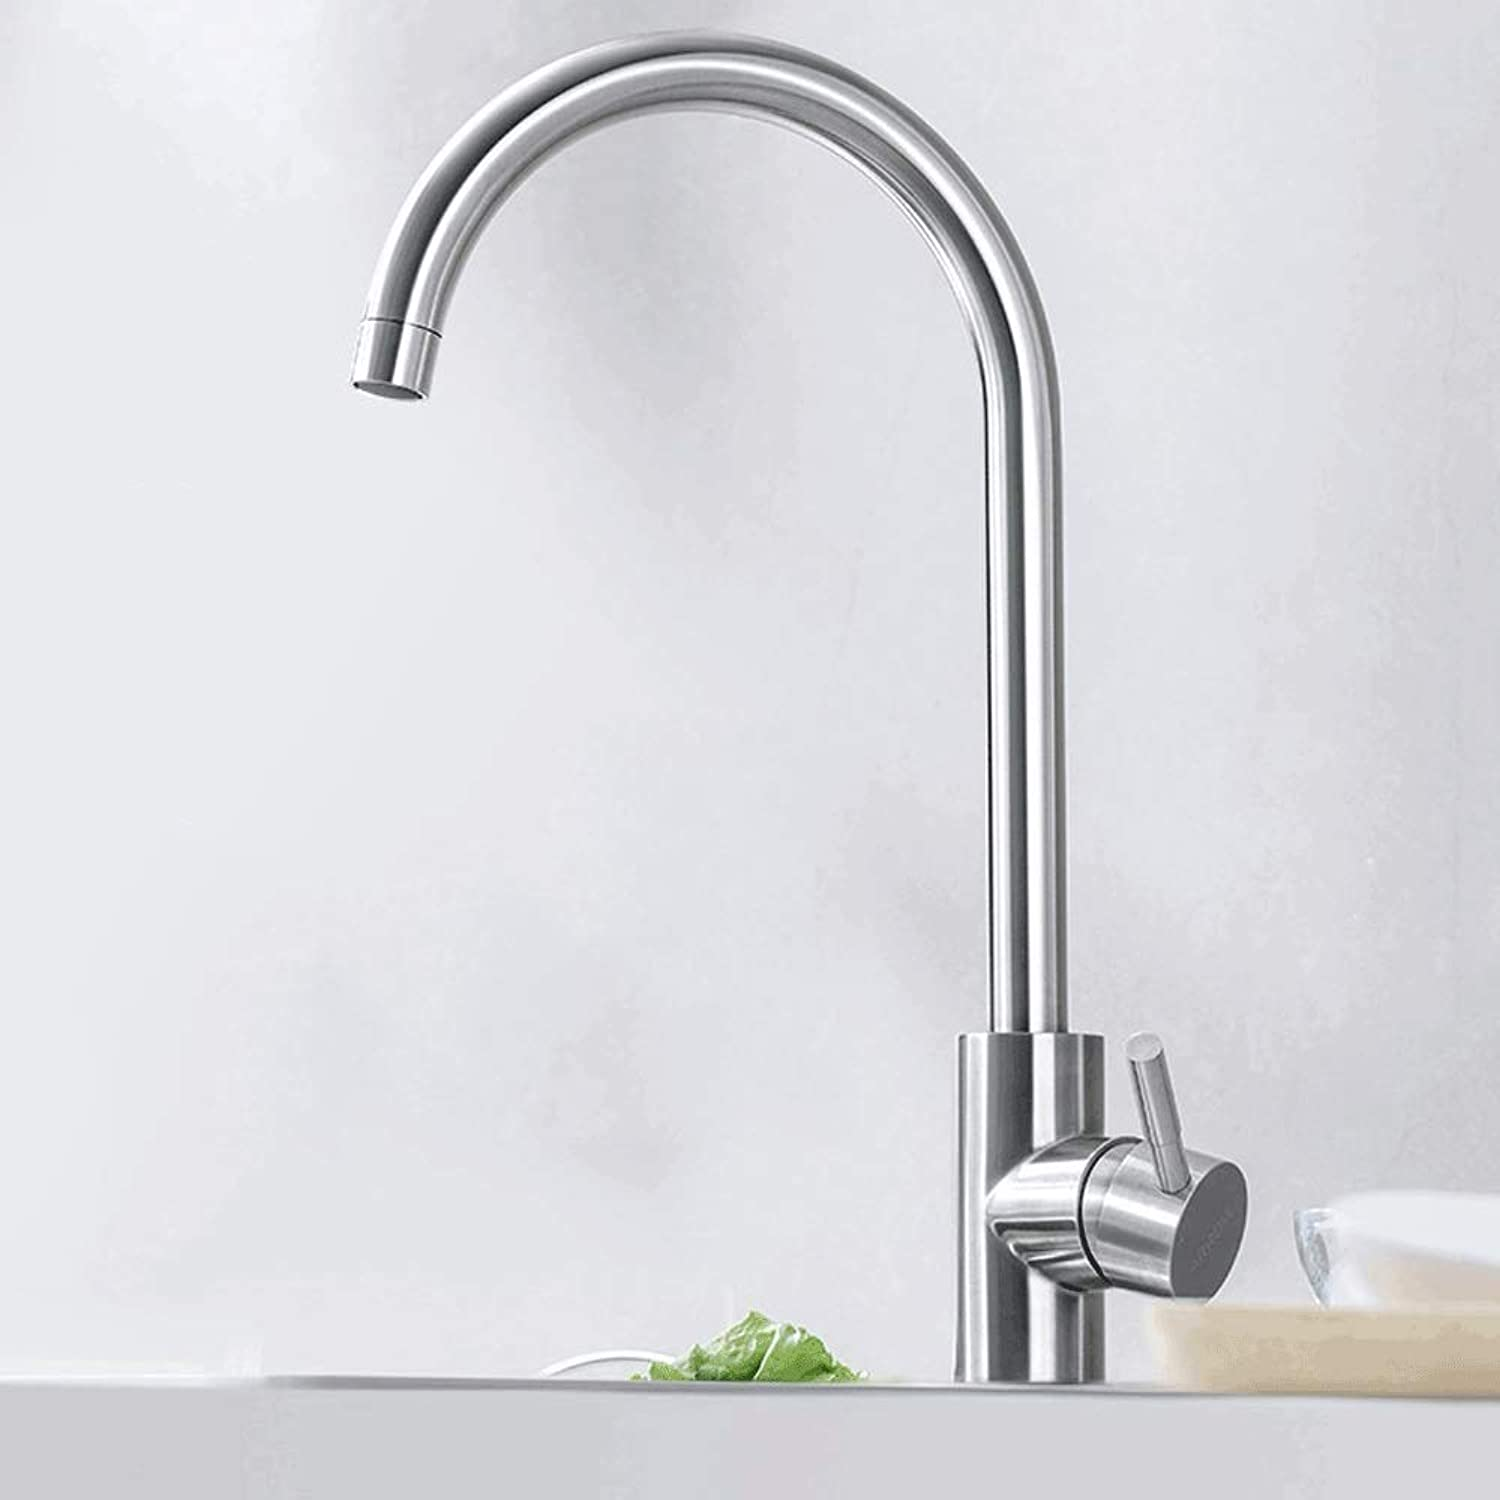 Ppigle Stainless steel faucet hot and cold kitchen sink splash-proof sink faucet